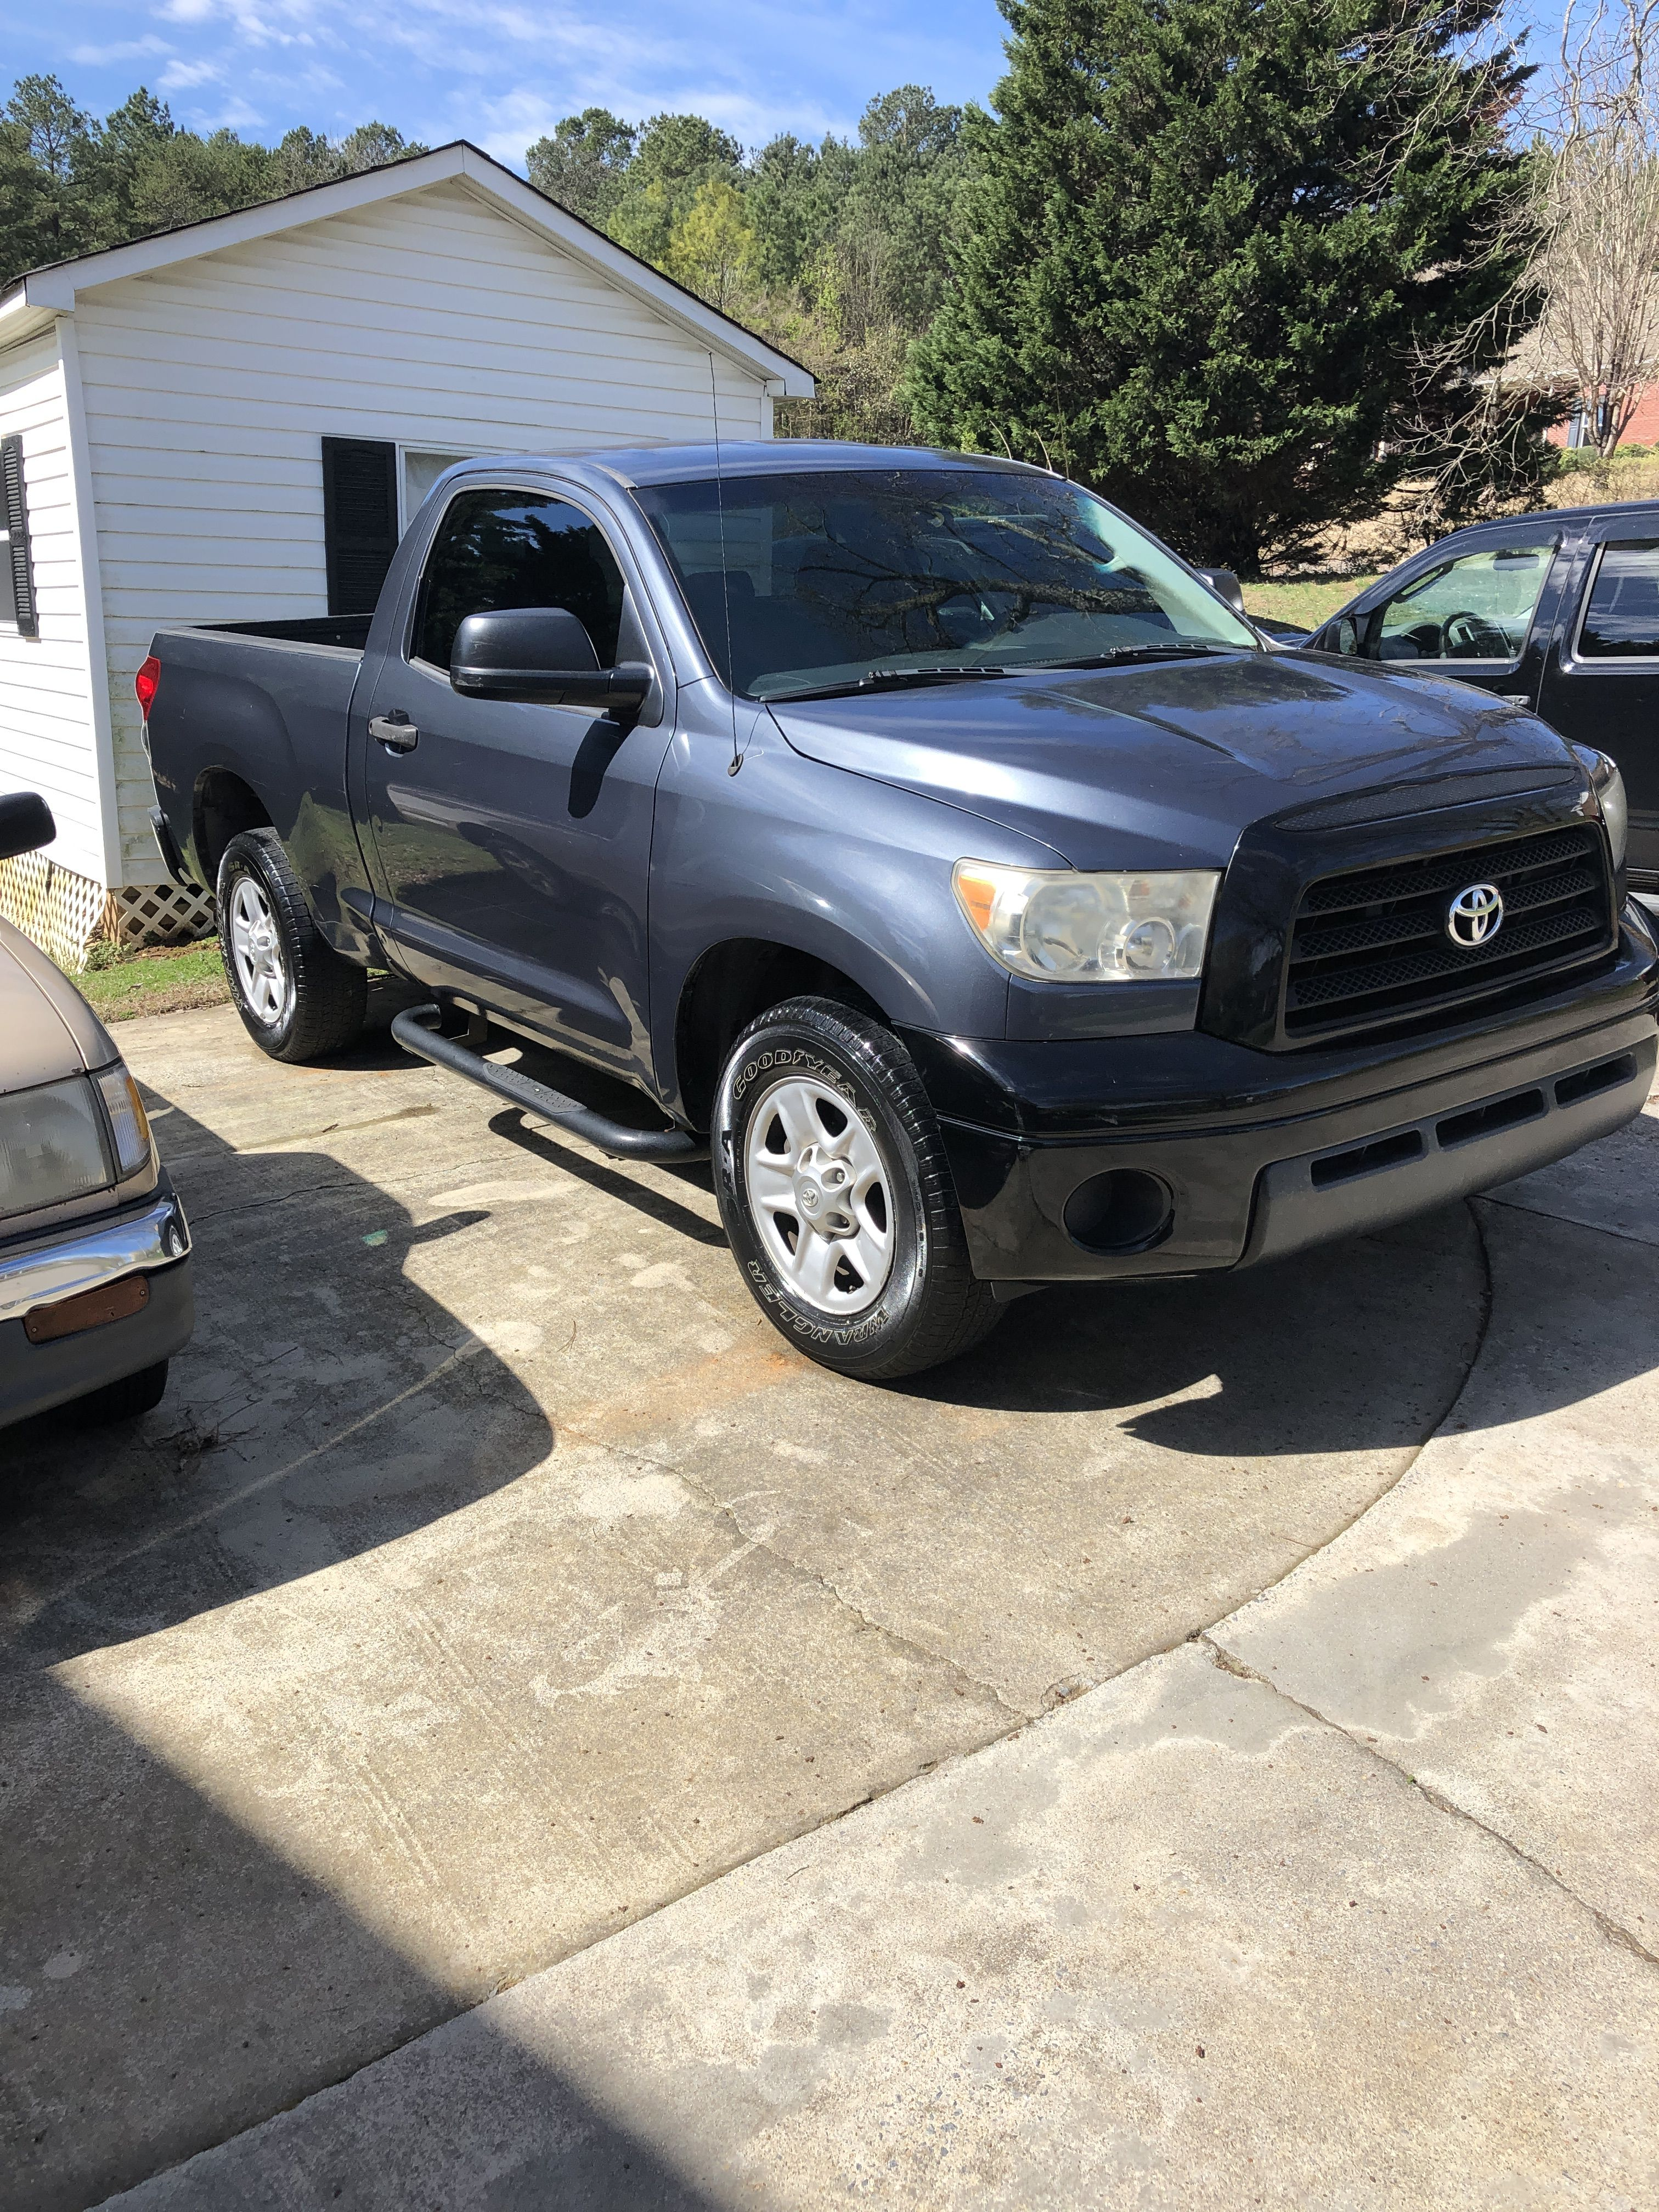 For Sale 2007 Toyota Tundra 4 0 V6 2 Wheel Drive 204 000 Miles 7900 Calhoun Ga 2007 Toyota Tundra Toyota Tundra Tundra